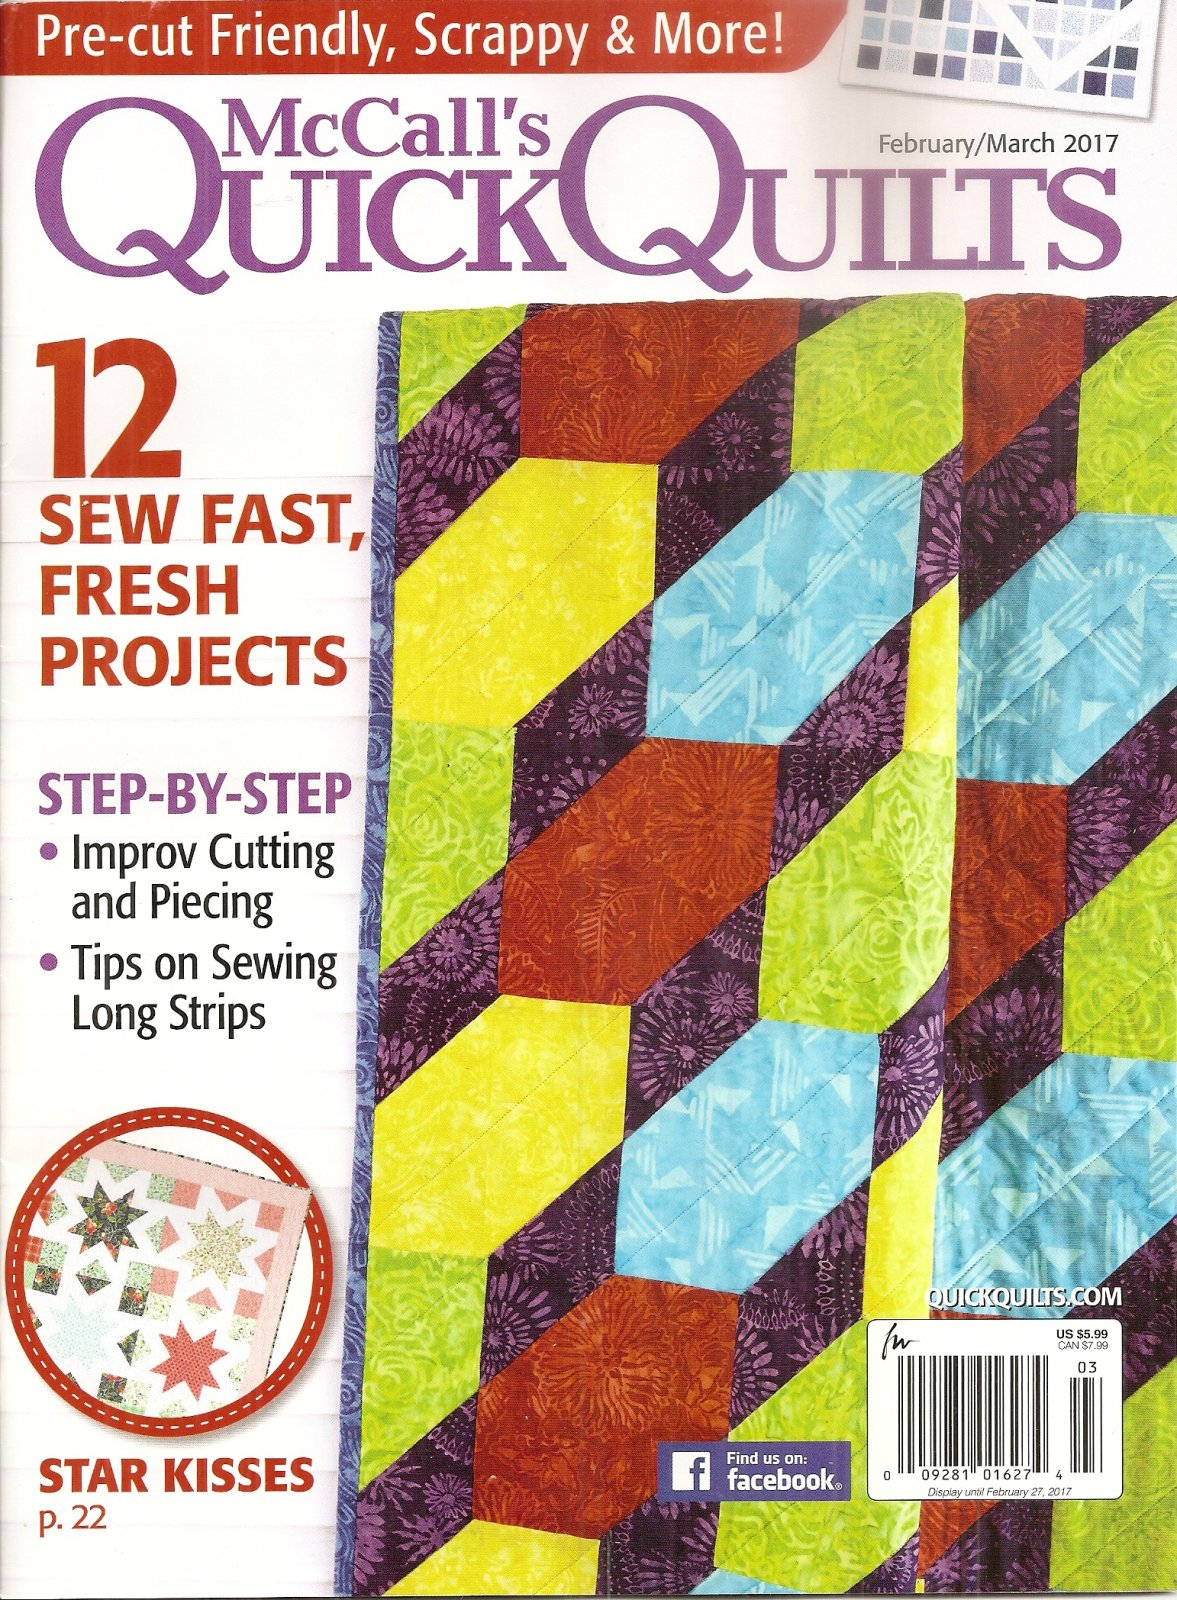 mccalls quilts by quilt accuquilt courtesy quick designer inspiration blog mahoney feature patterns an poppyquilt of karlin magazine in photo mellisa